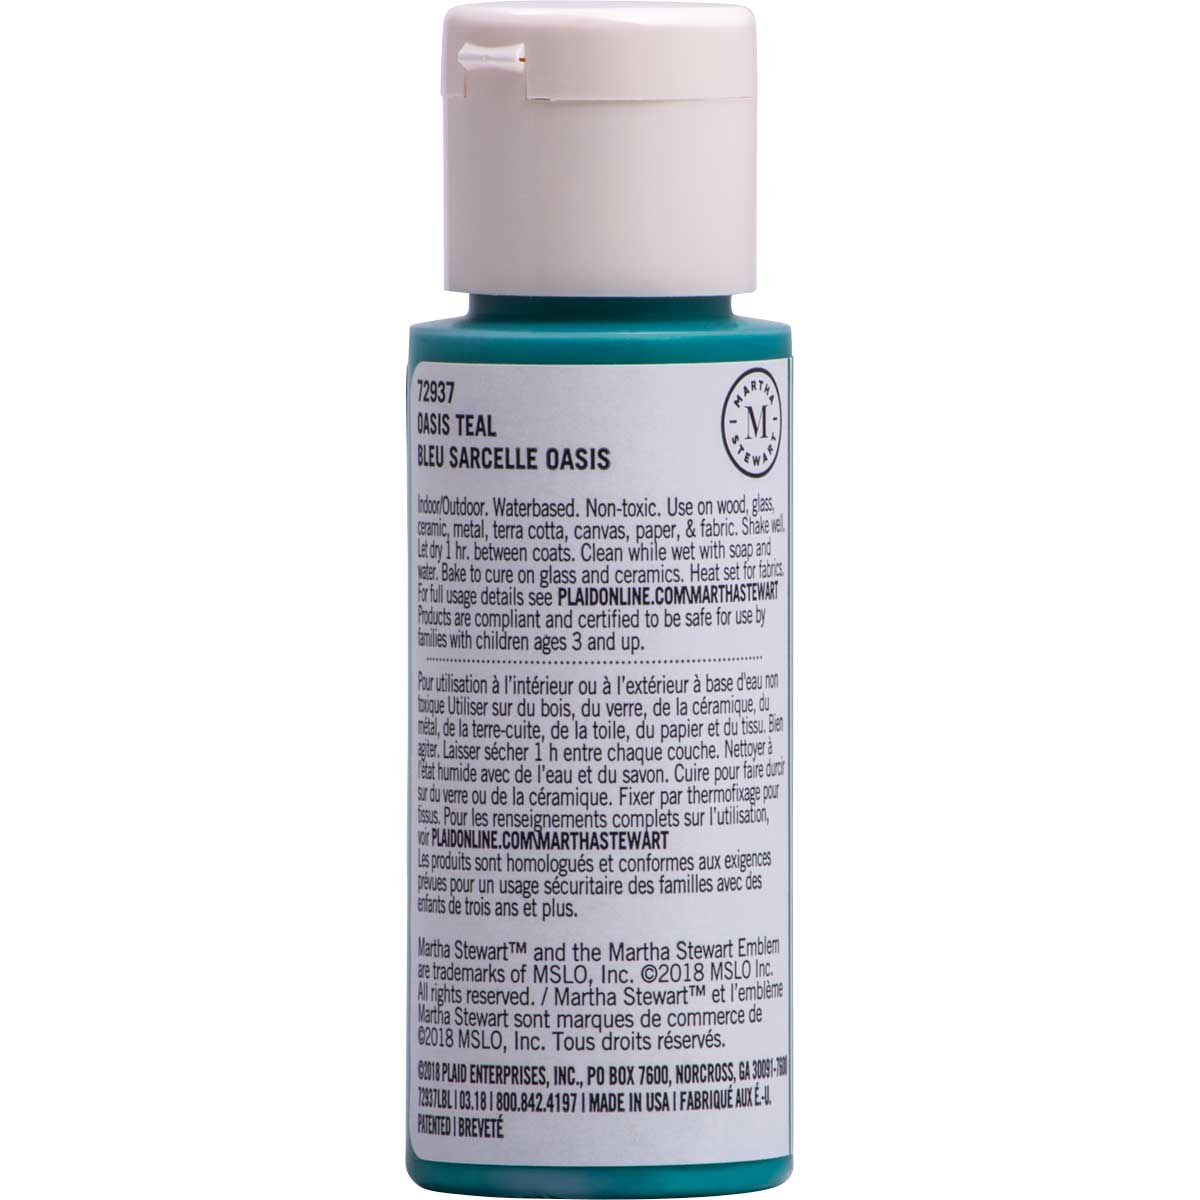 Martha Stewart ® Multi-Surface Pearl Acrylic Craft Paint CPSIA - Oasis Teal, 2 oz. - 72937